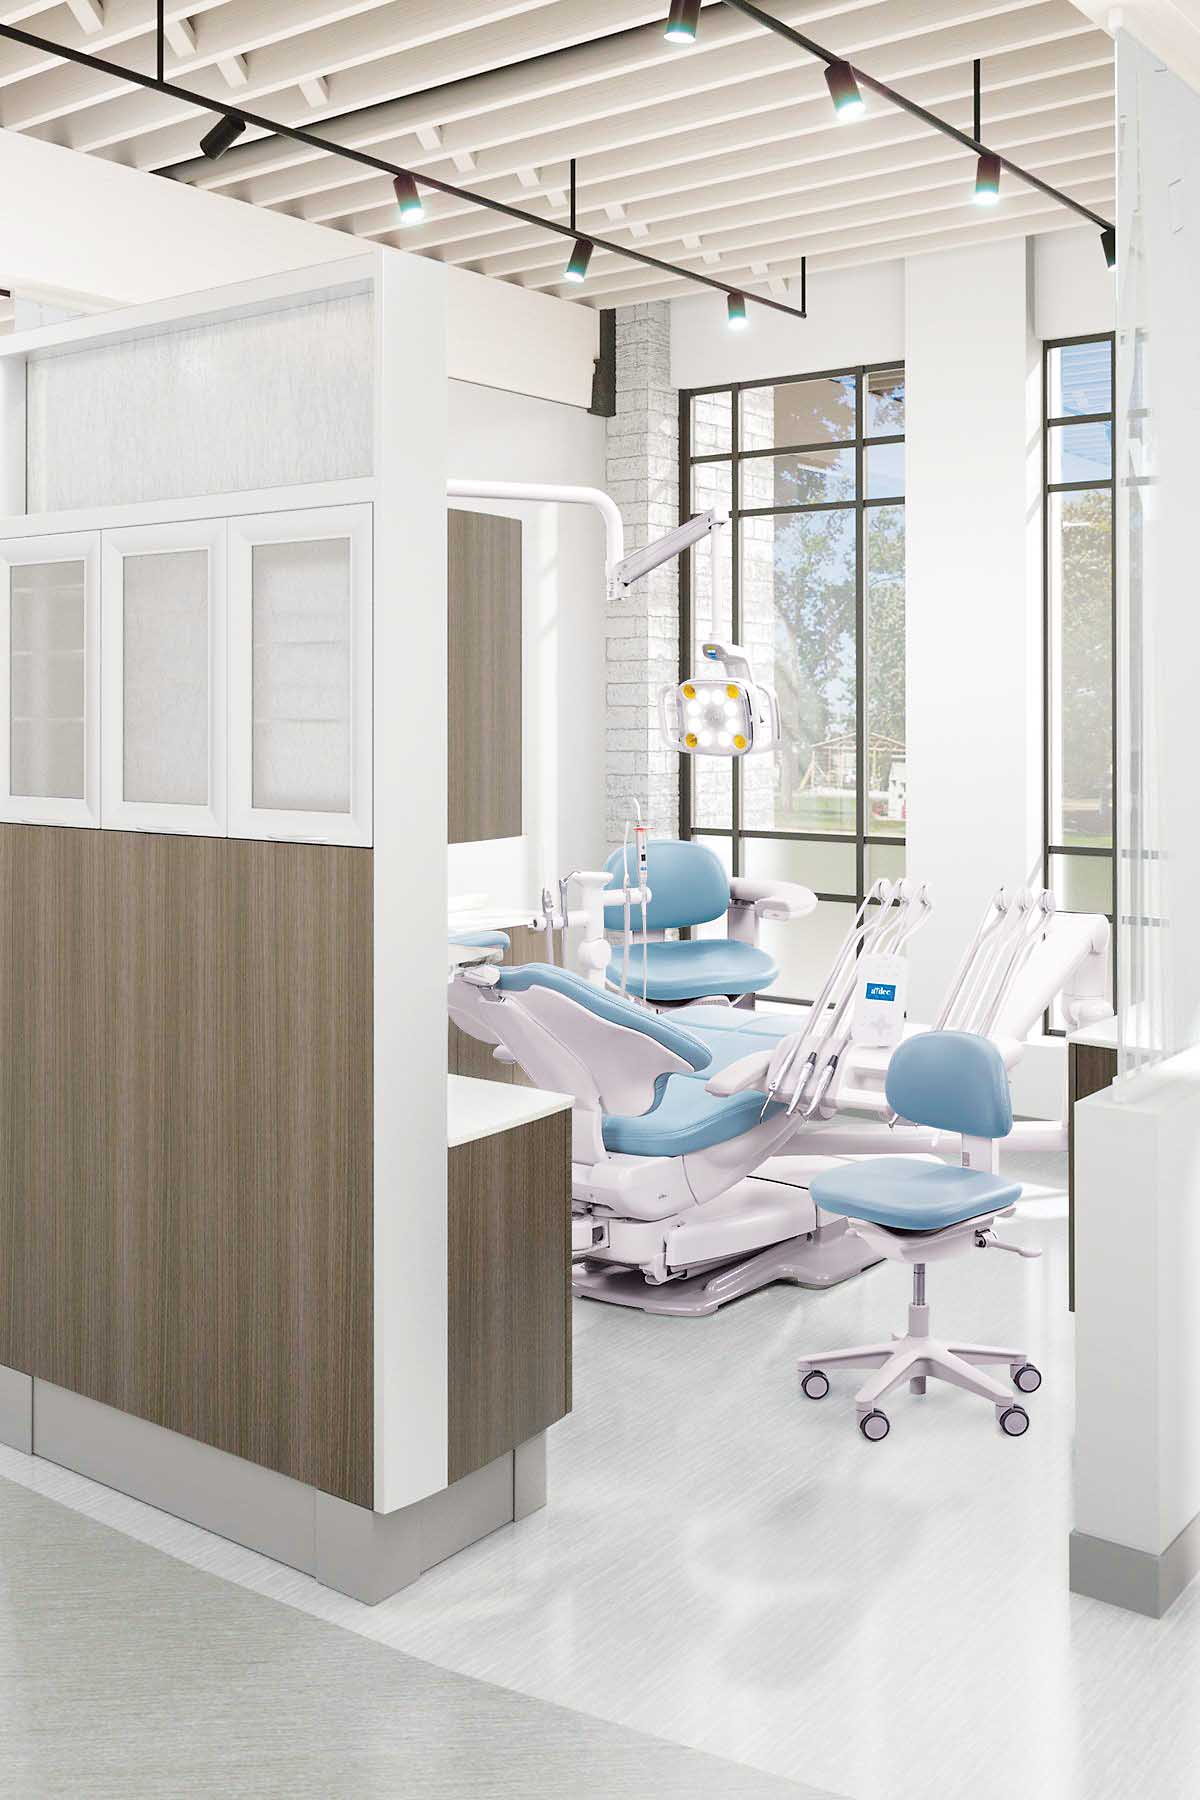 Turnkey Surgery Design